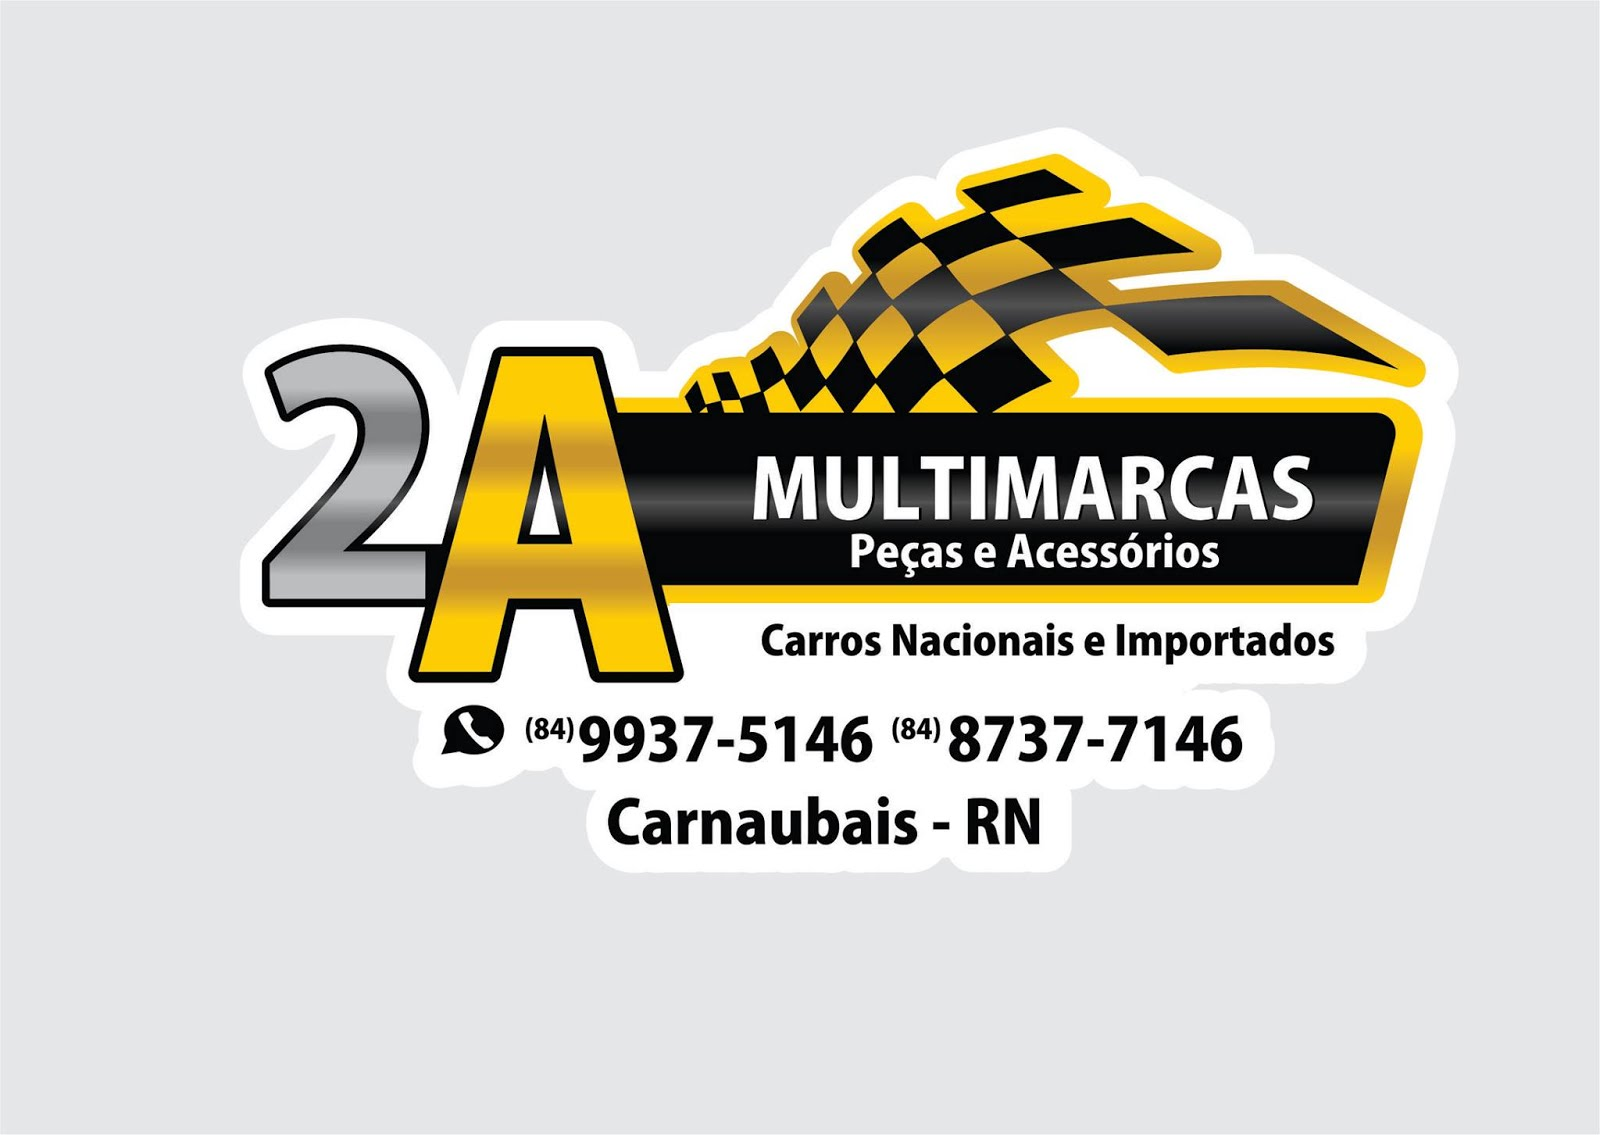 2A MULTIMARCAS